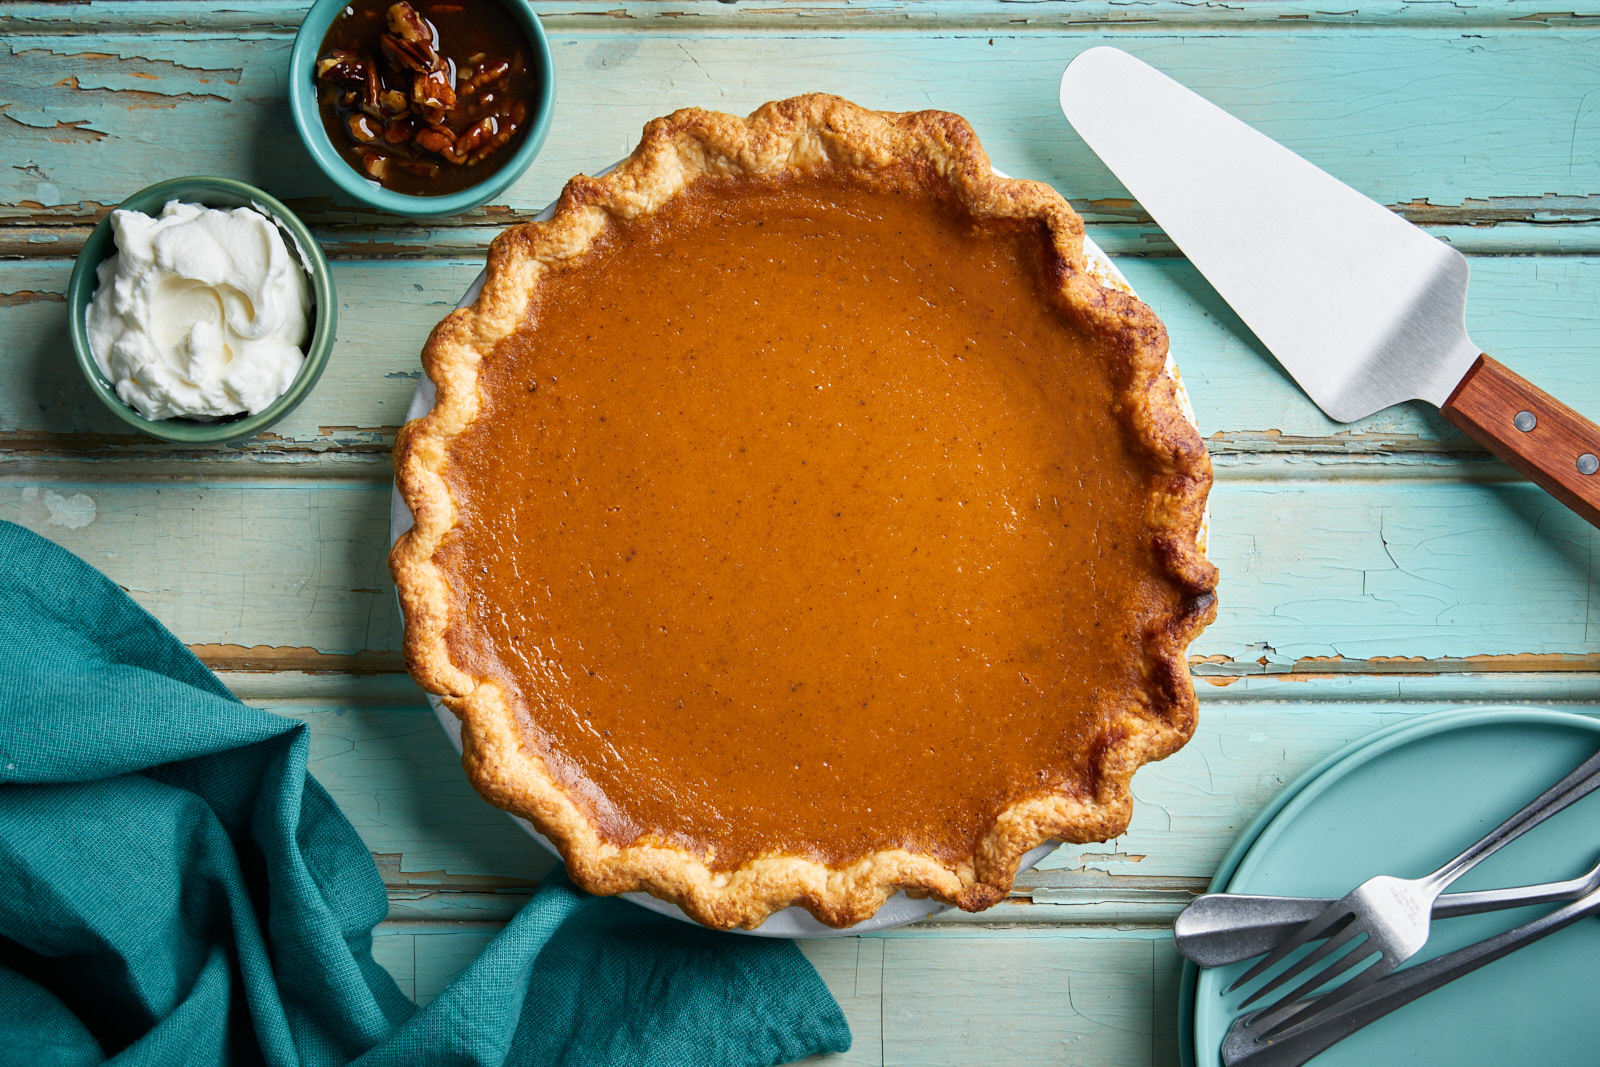 Classic Pumpkin Pie With No Shrink Pie Crust